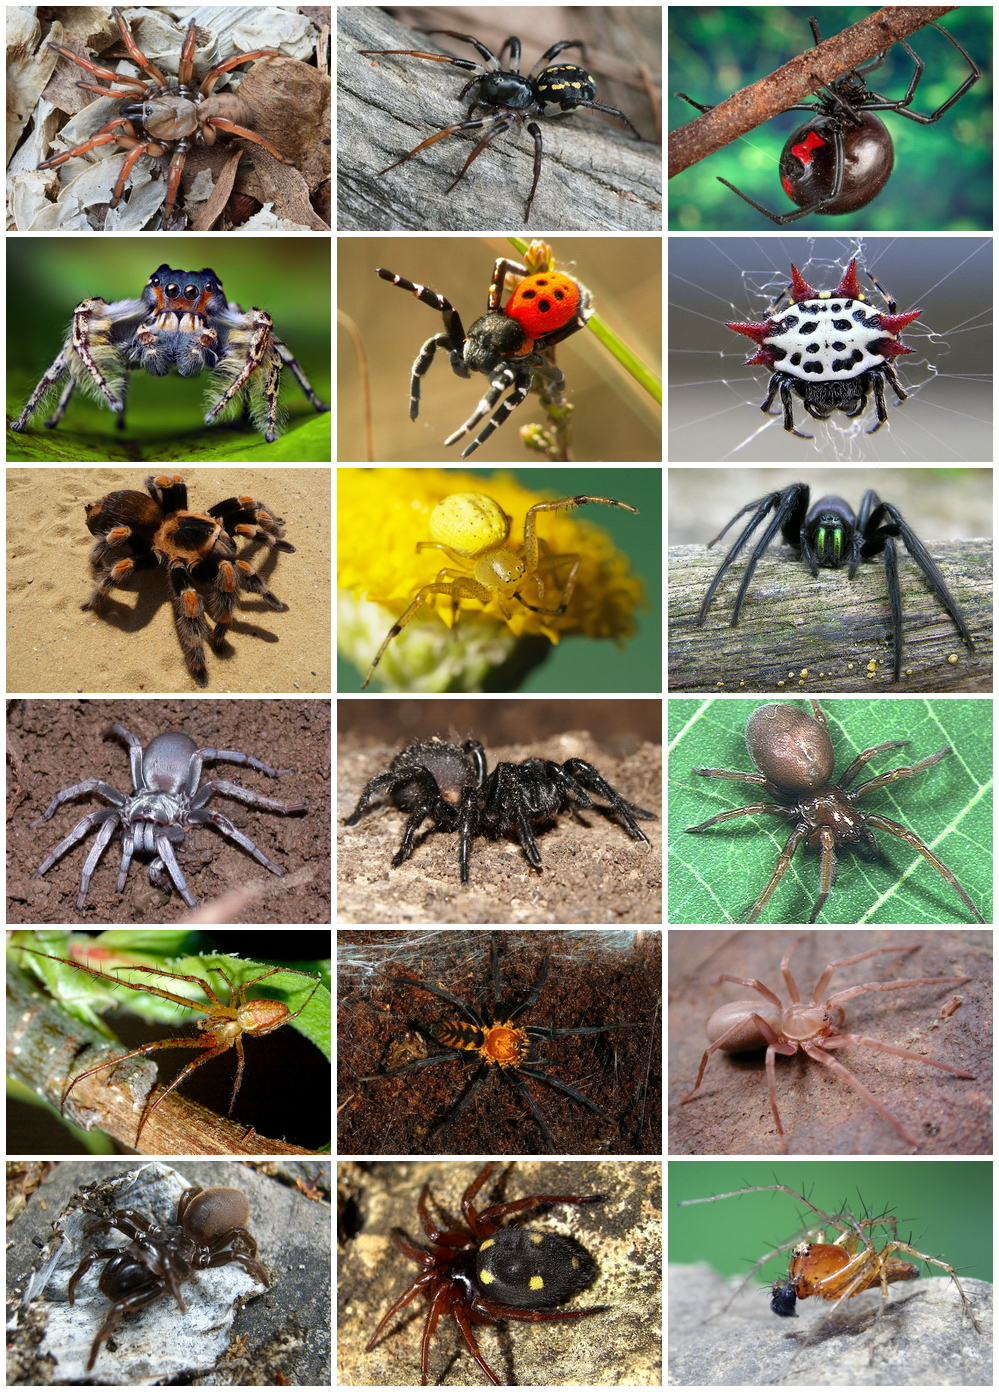 IMAGE(http://upload.wikimedia.org/wikipedia/commons/f/f9/Spiders_Diversity.jpg)